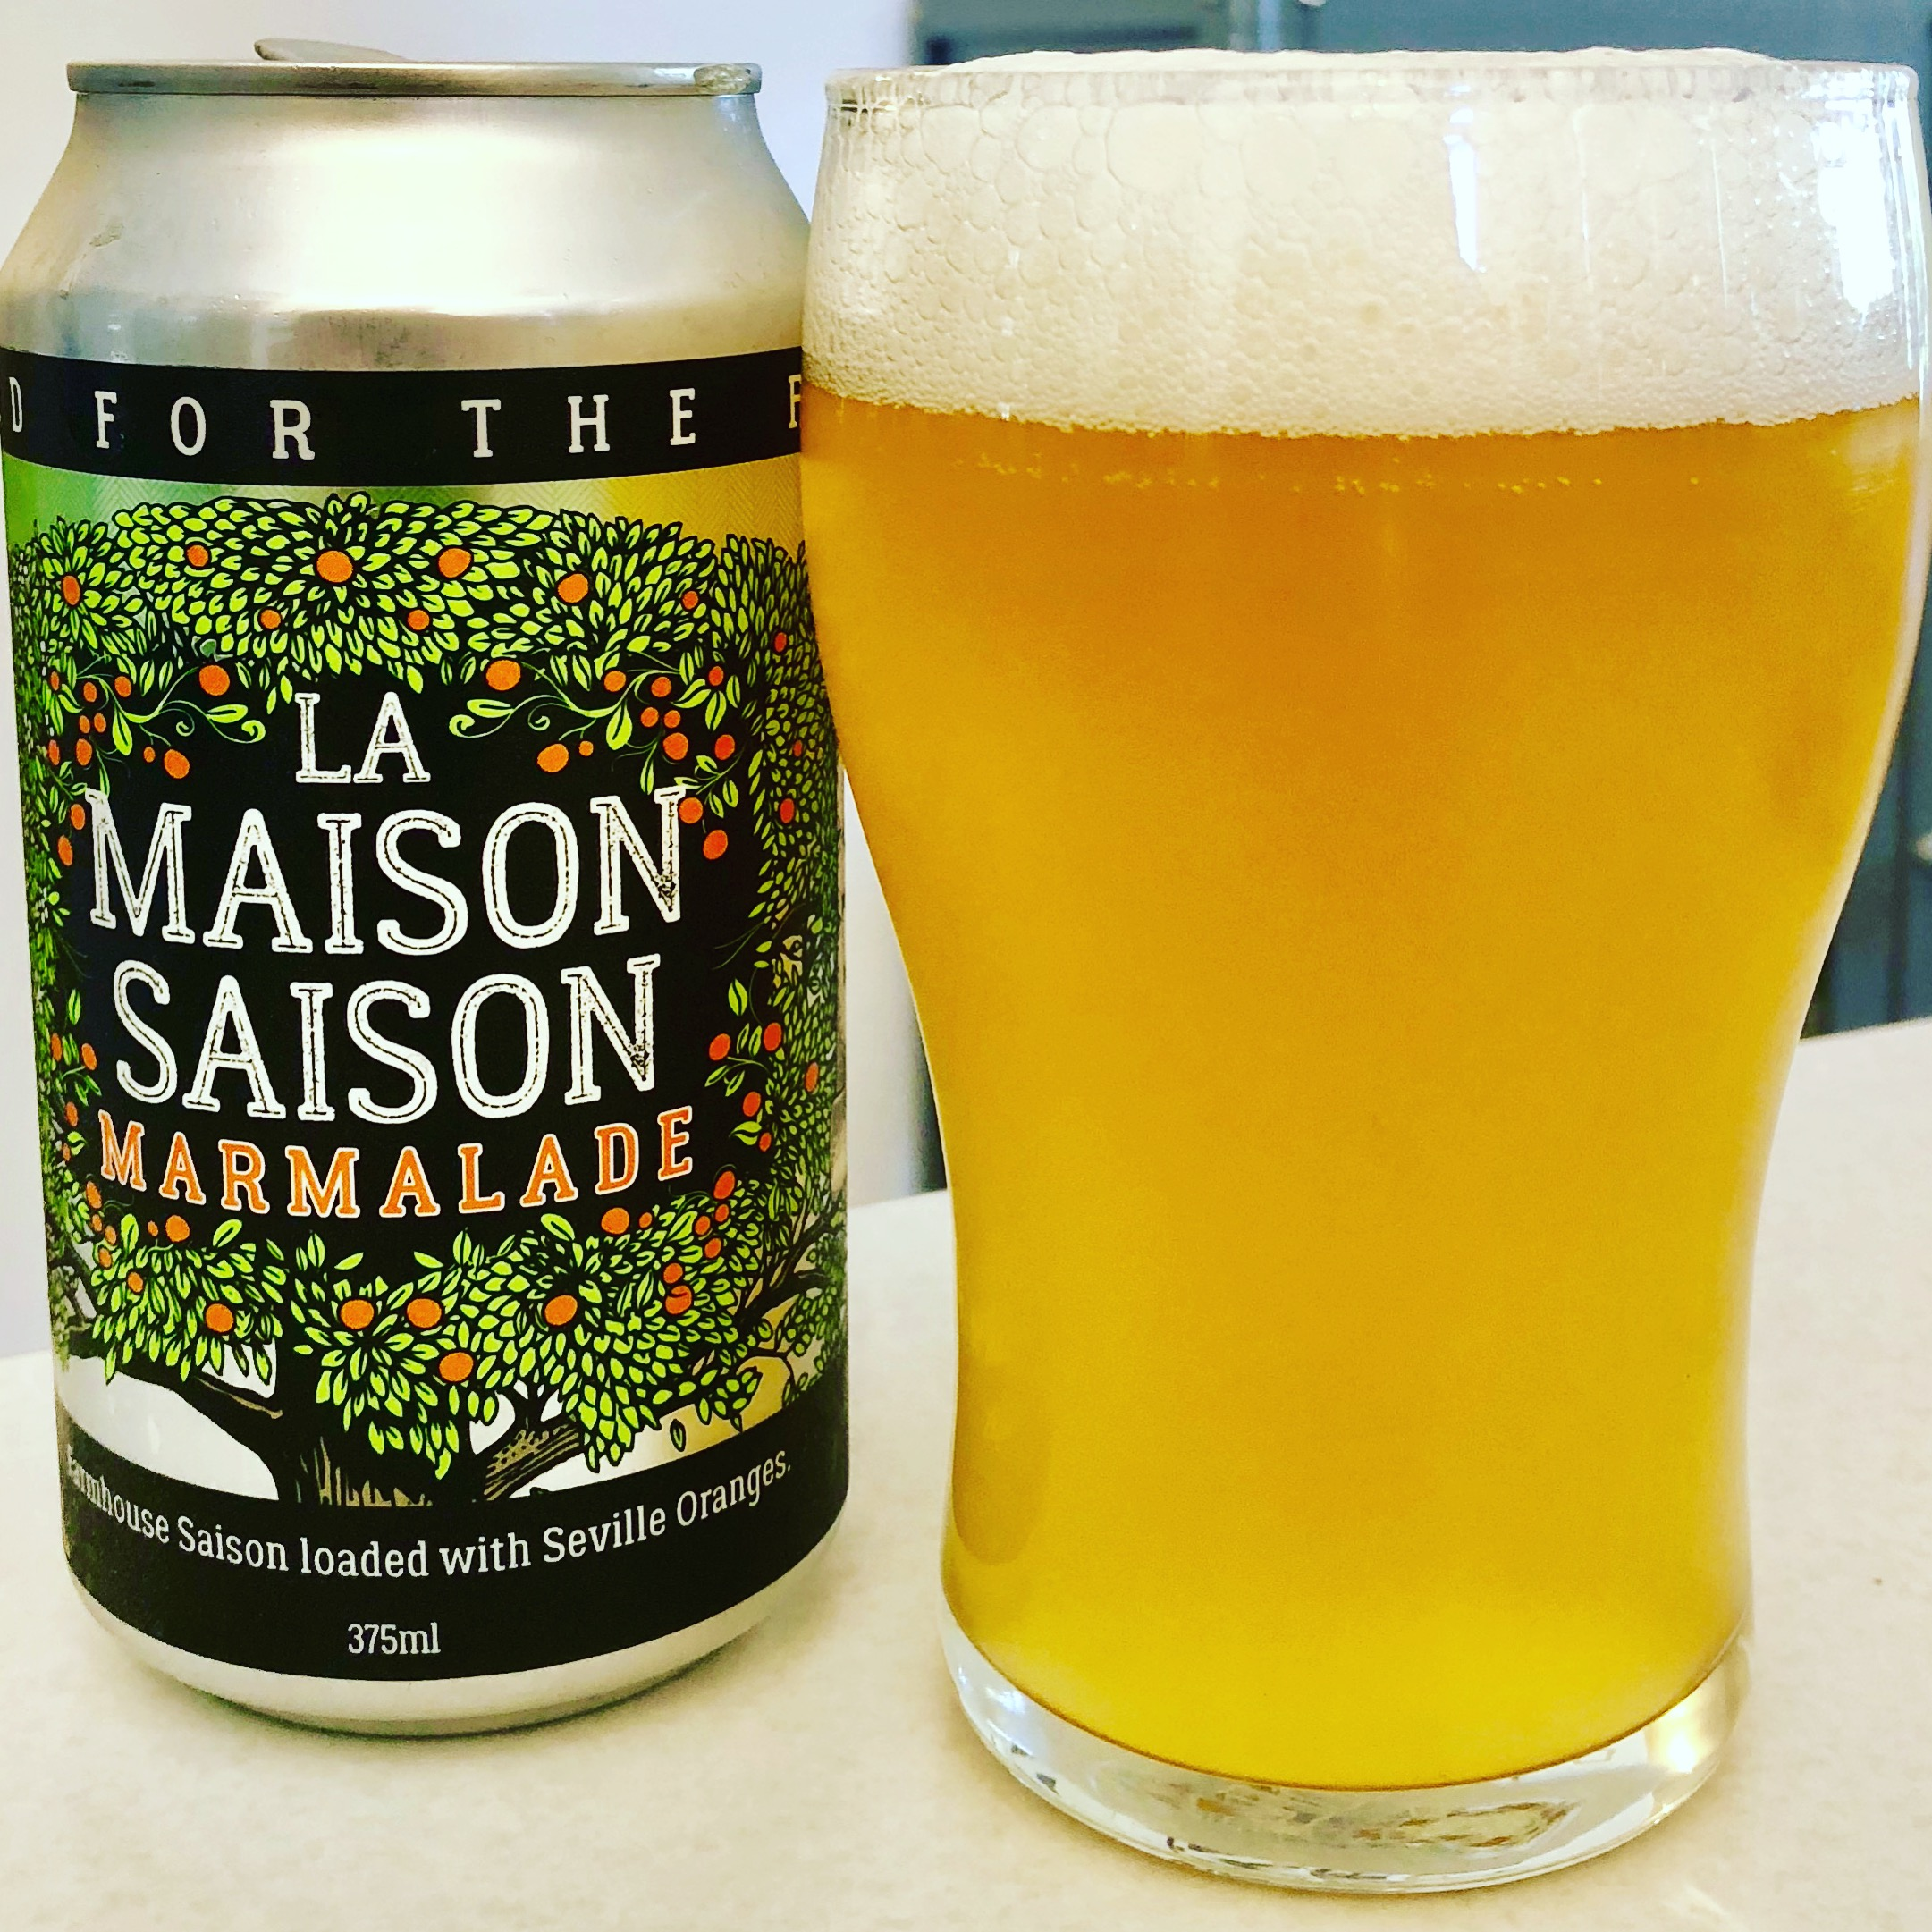 BeerFarm La Maison Saison - Marmalade (6.5% abv): Classic farmhouse character with the lifted tang of Seville Oranges. All class from this Margaret River craft-brewer.